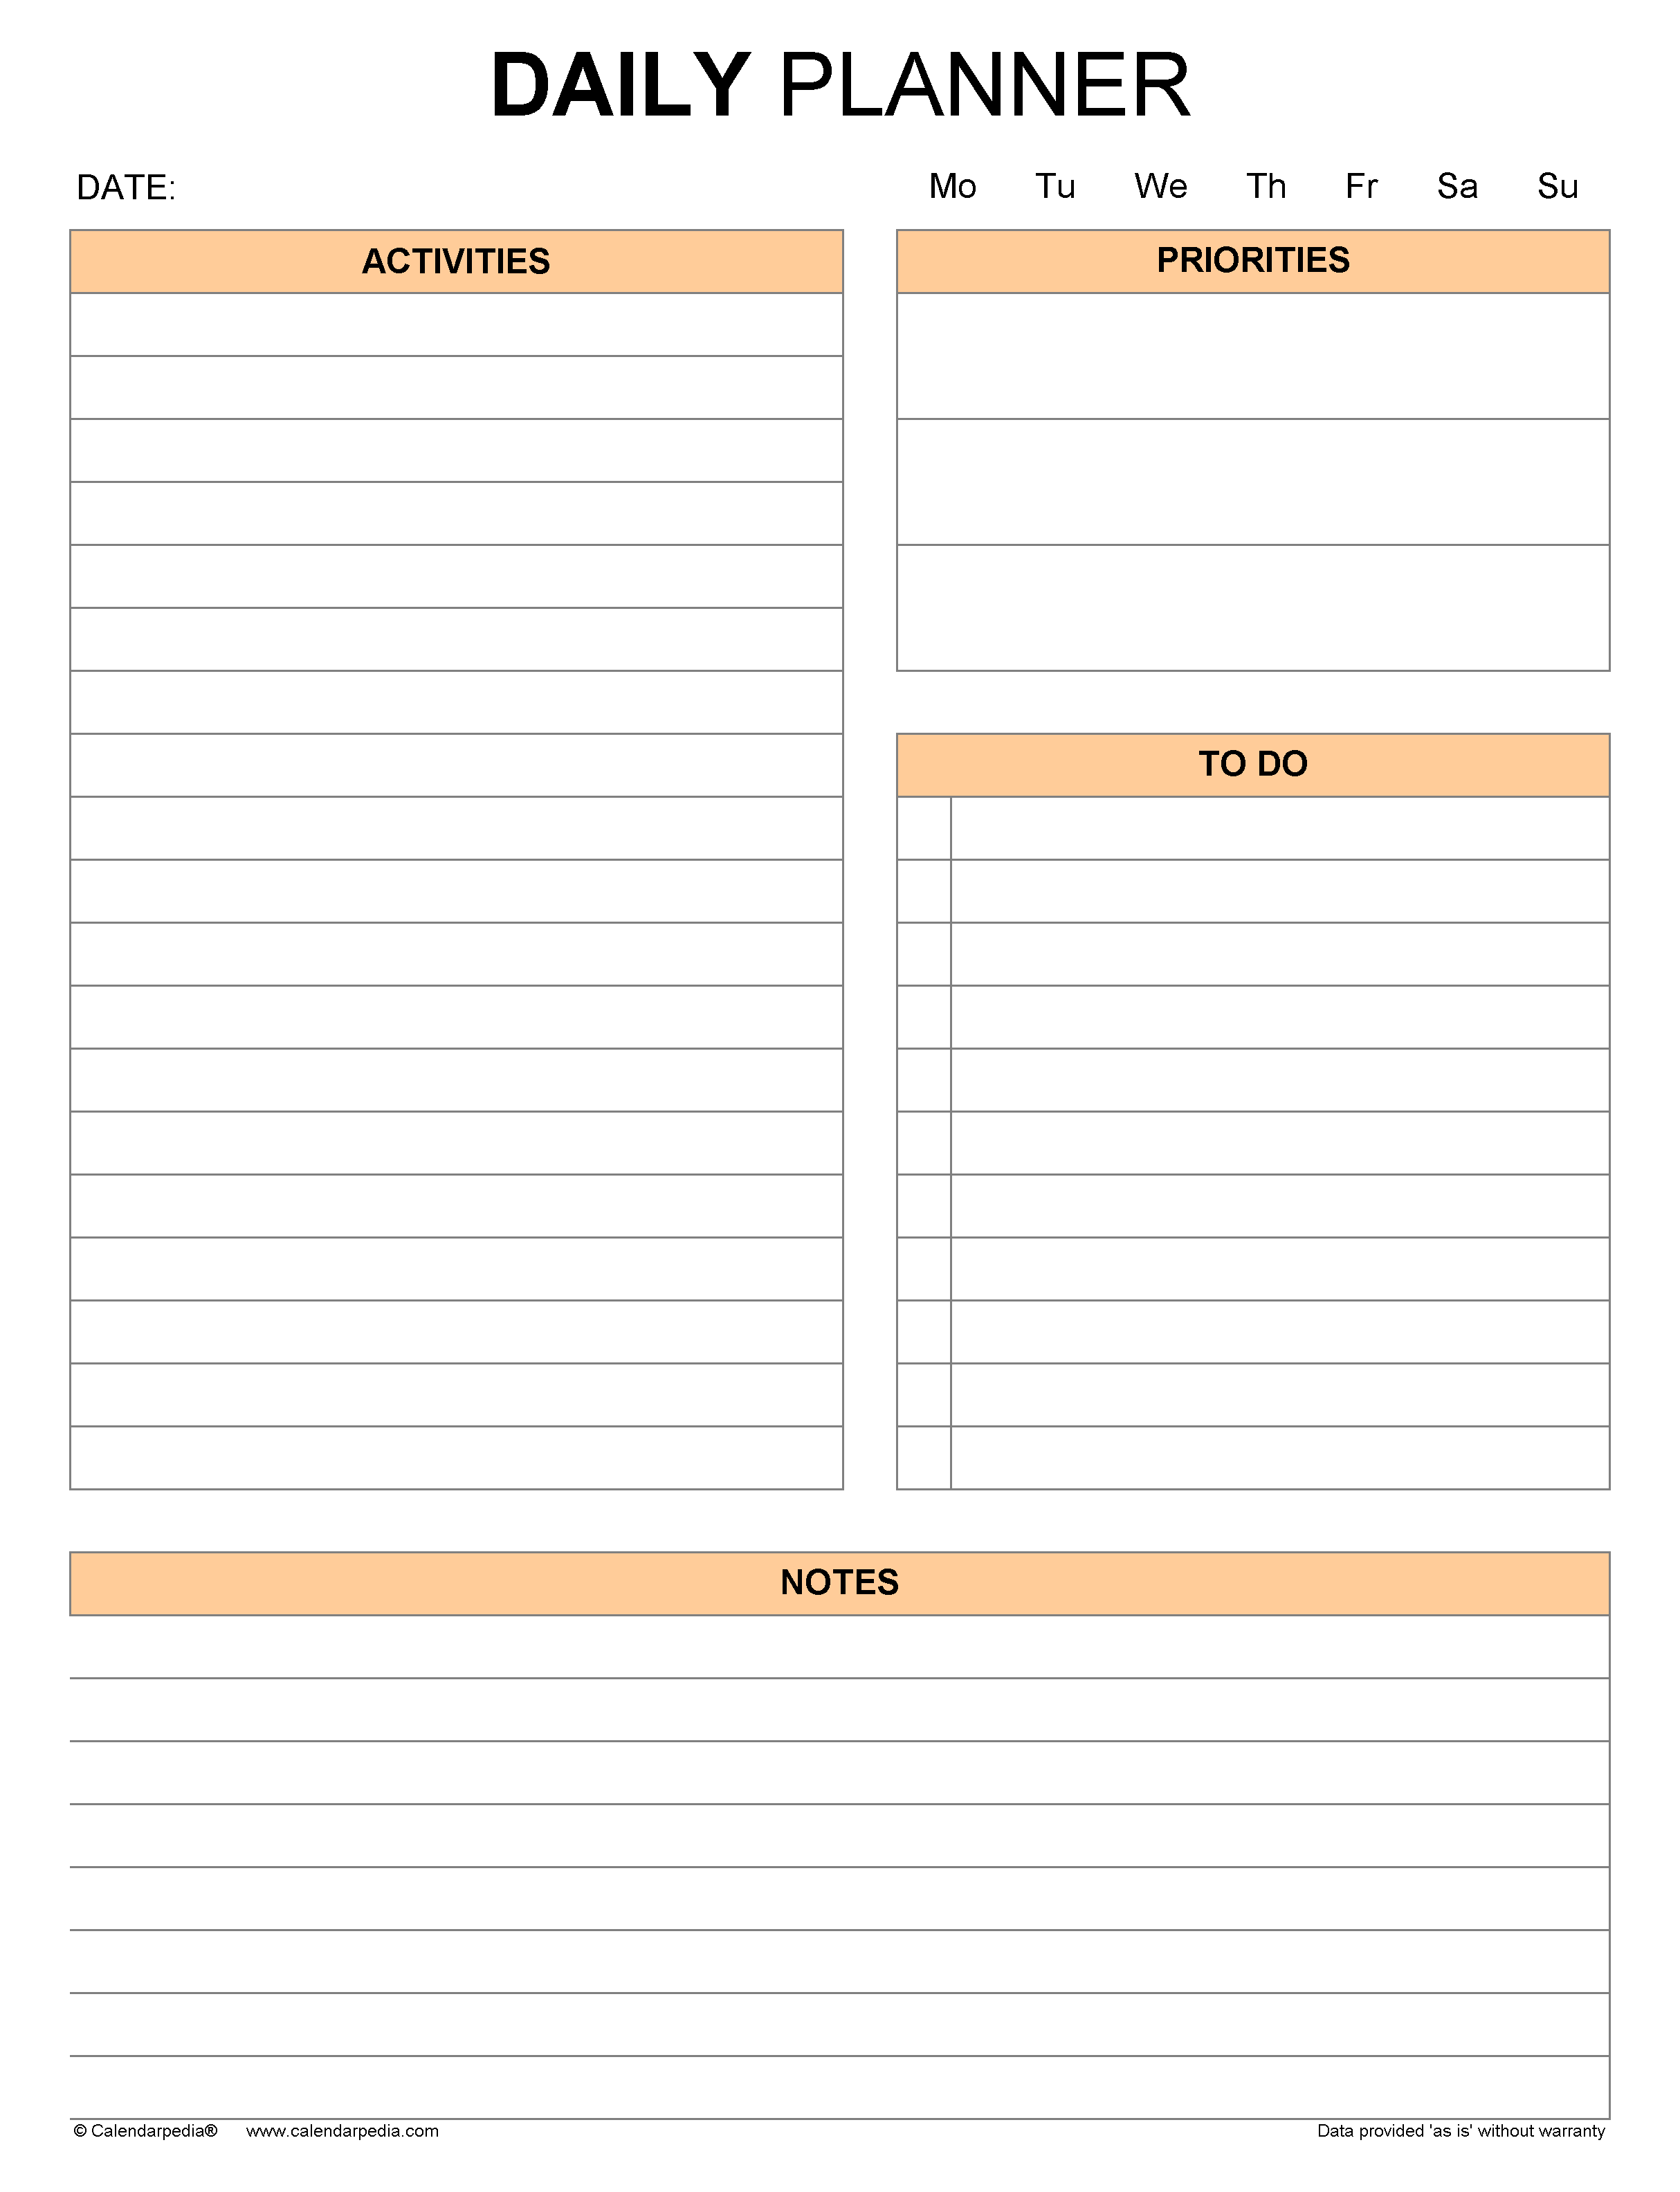 Daily planners in Microsoft Word format - 21+ templates For Hours Of Operation Template Microsoft Word